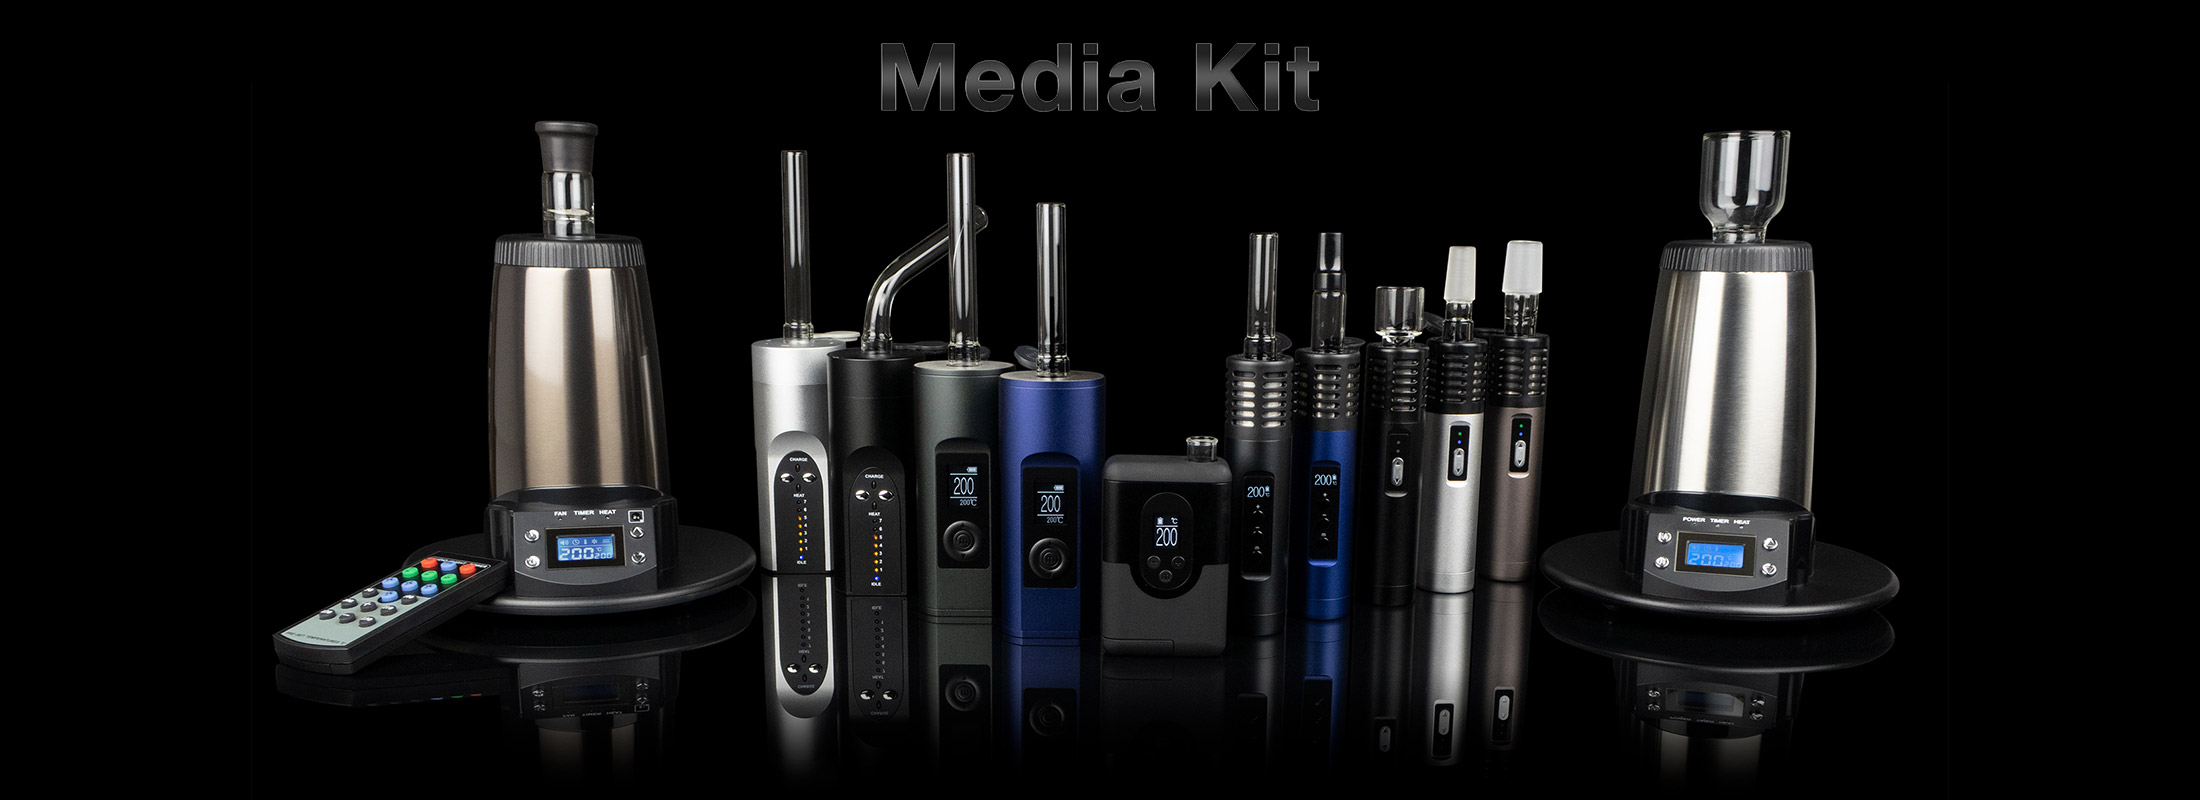 Arizer Media Kit